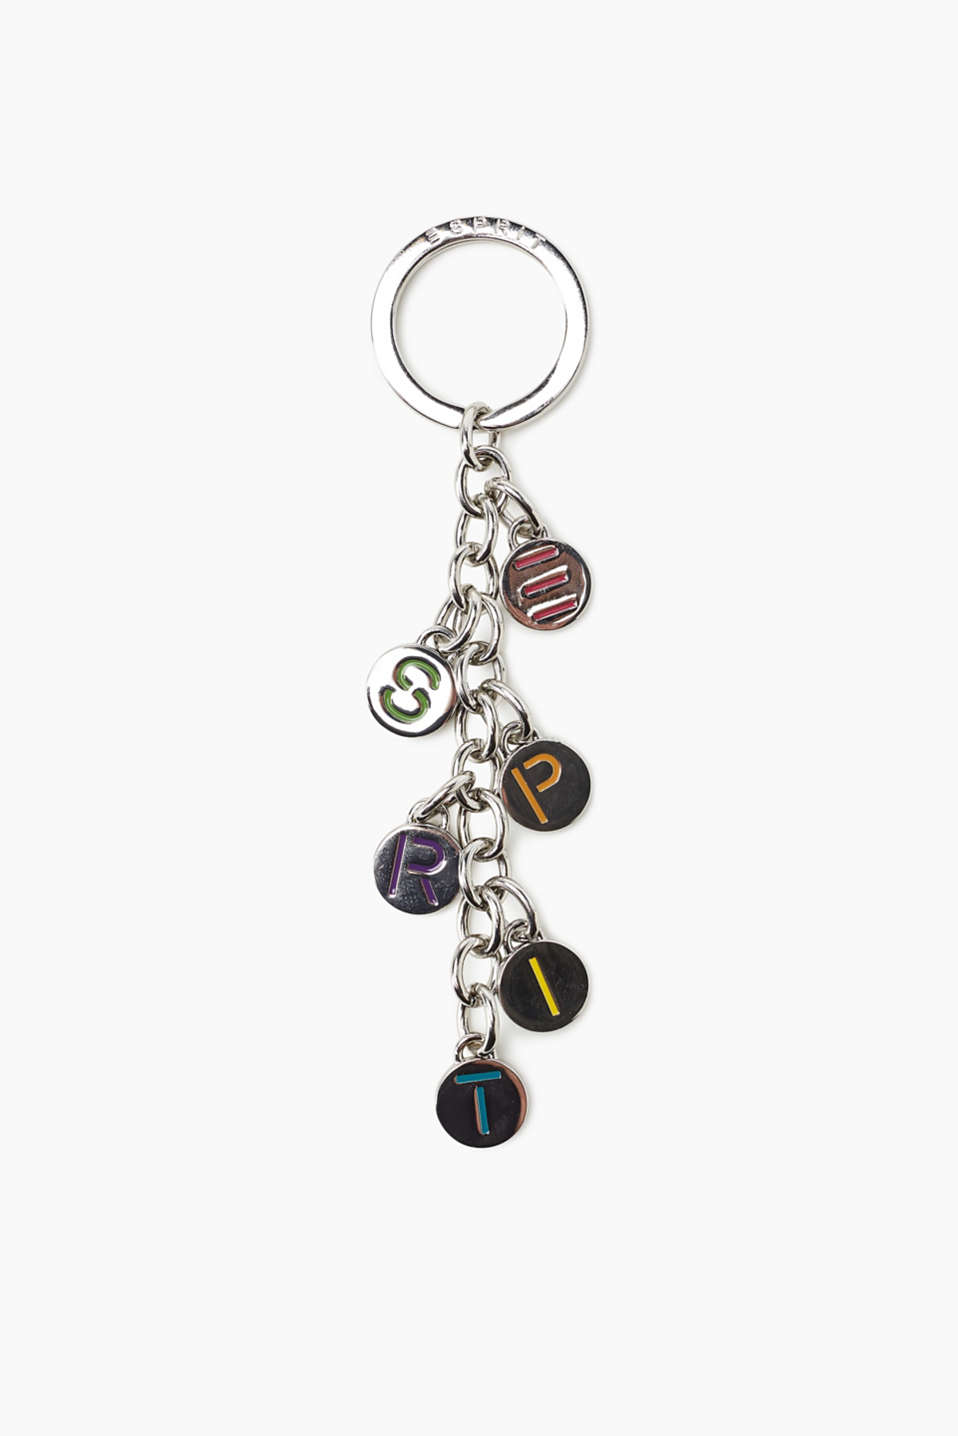 Key ring with a logo pendant in metal